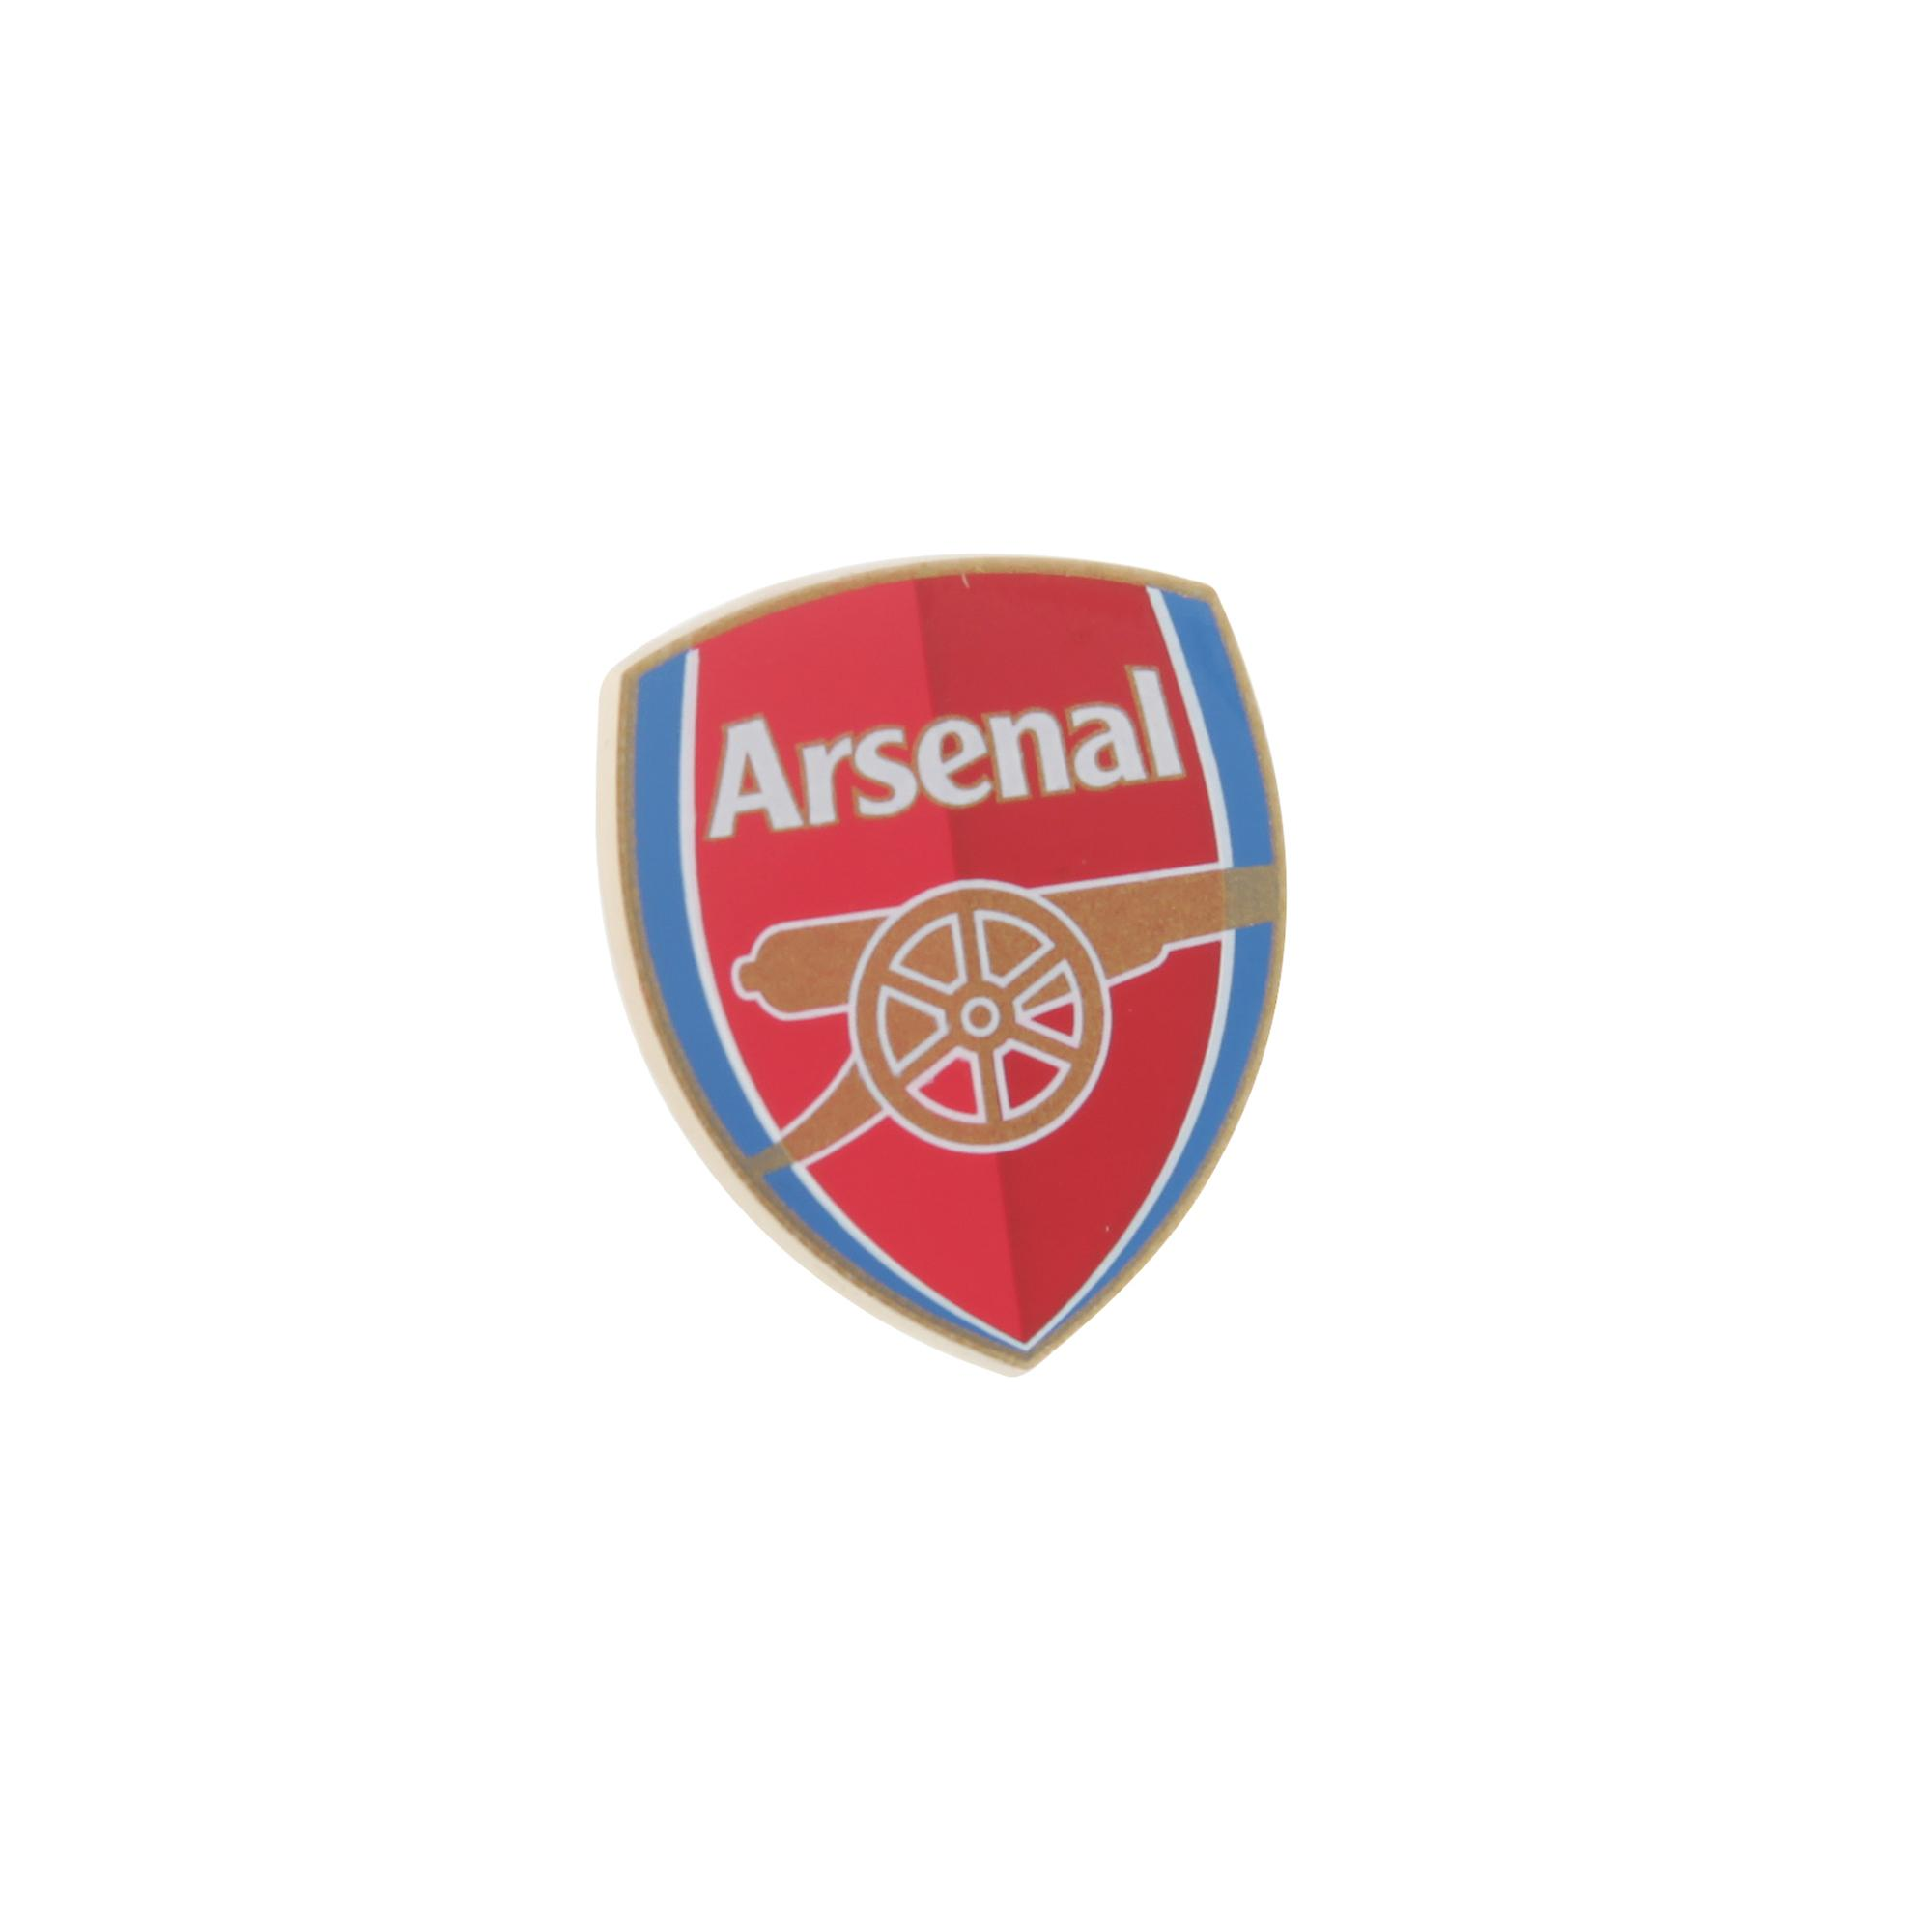 0a098e02c Arsenal FC Official Metal Football Crest Pin Badge